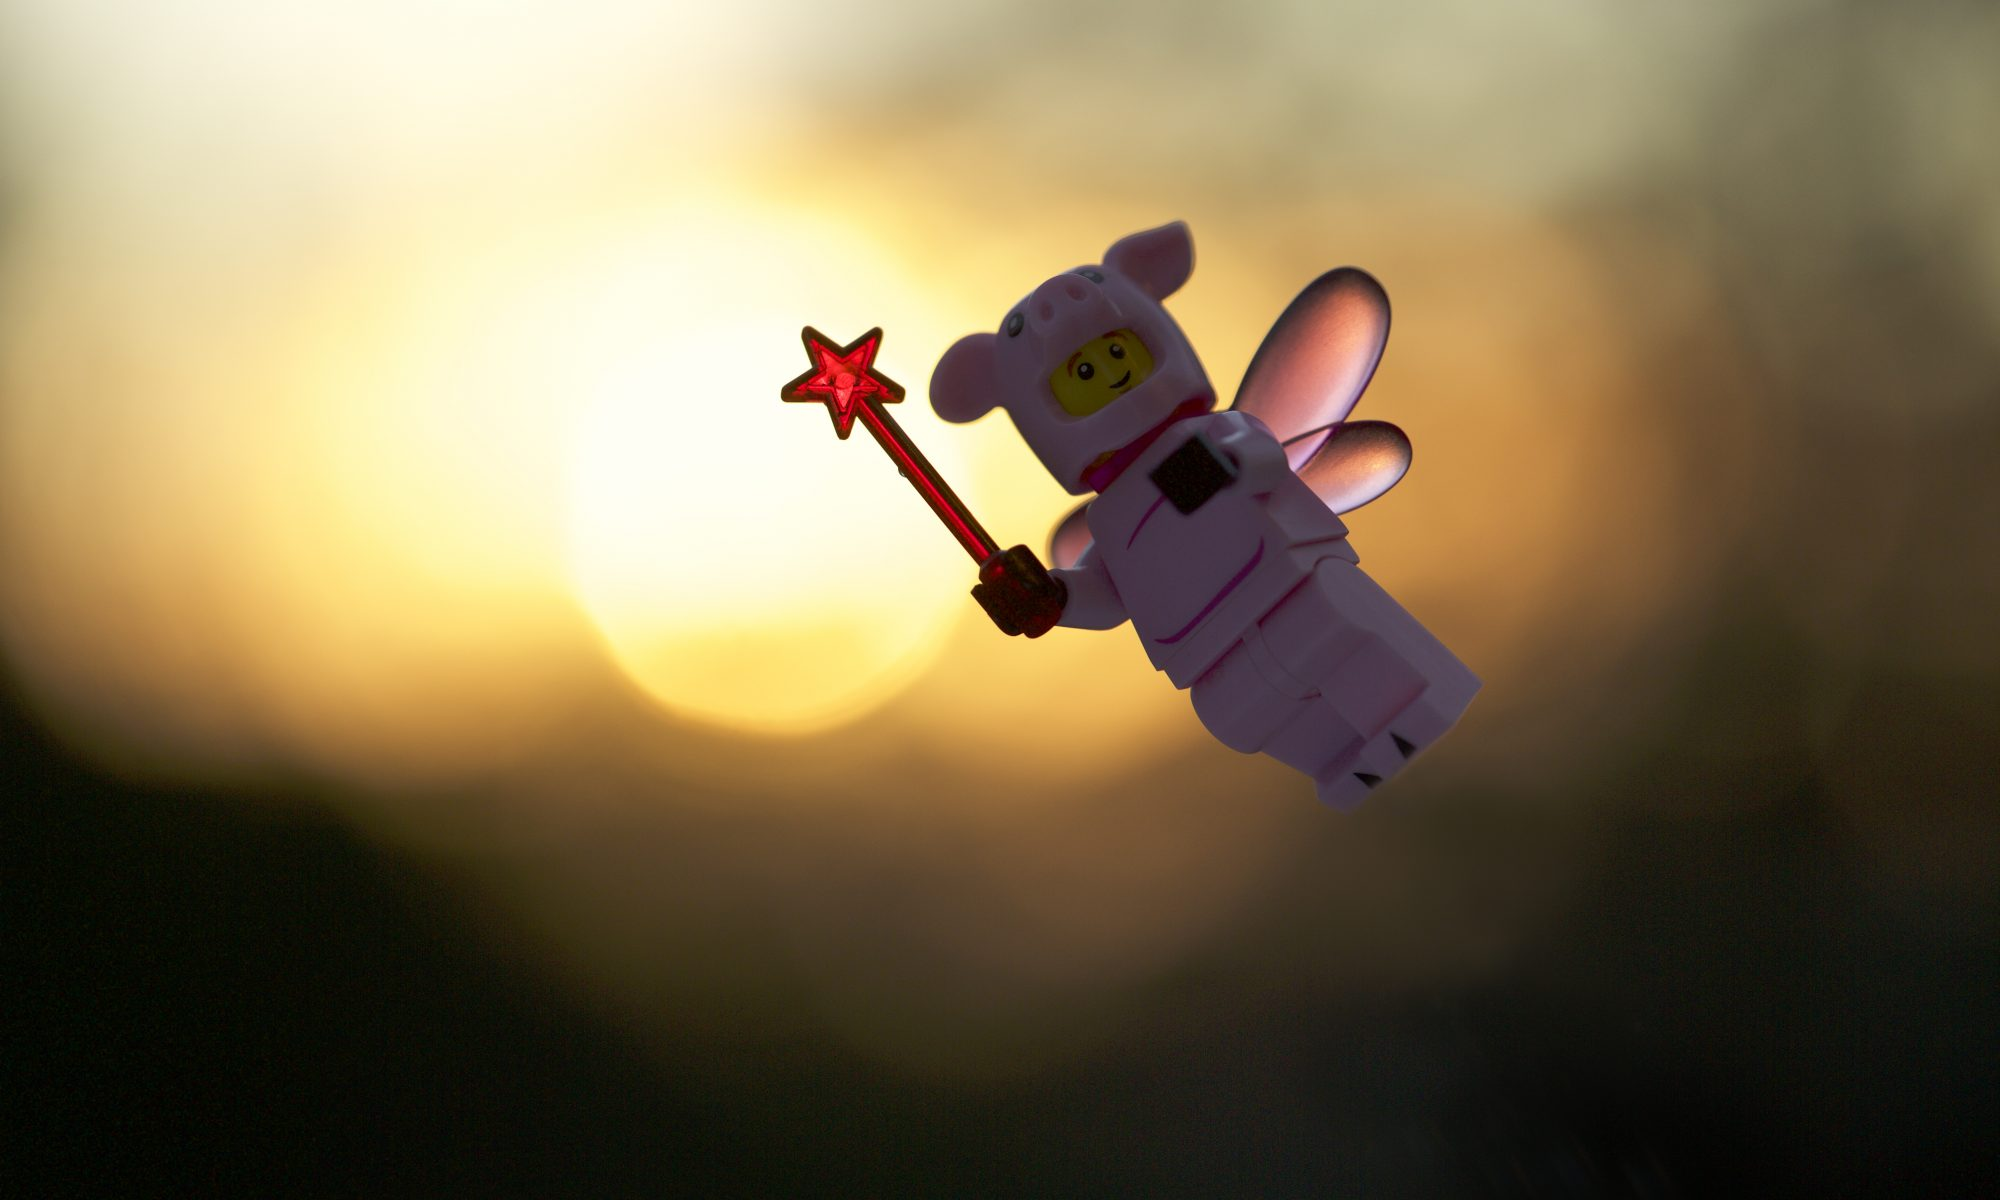 A LEGO pig mini figure with pink wings, holding a ed wand flies across the rising sun in this short depth of field outdoor toy photograph.